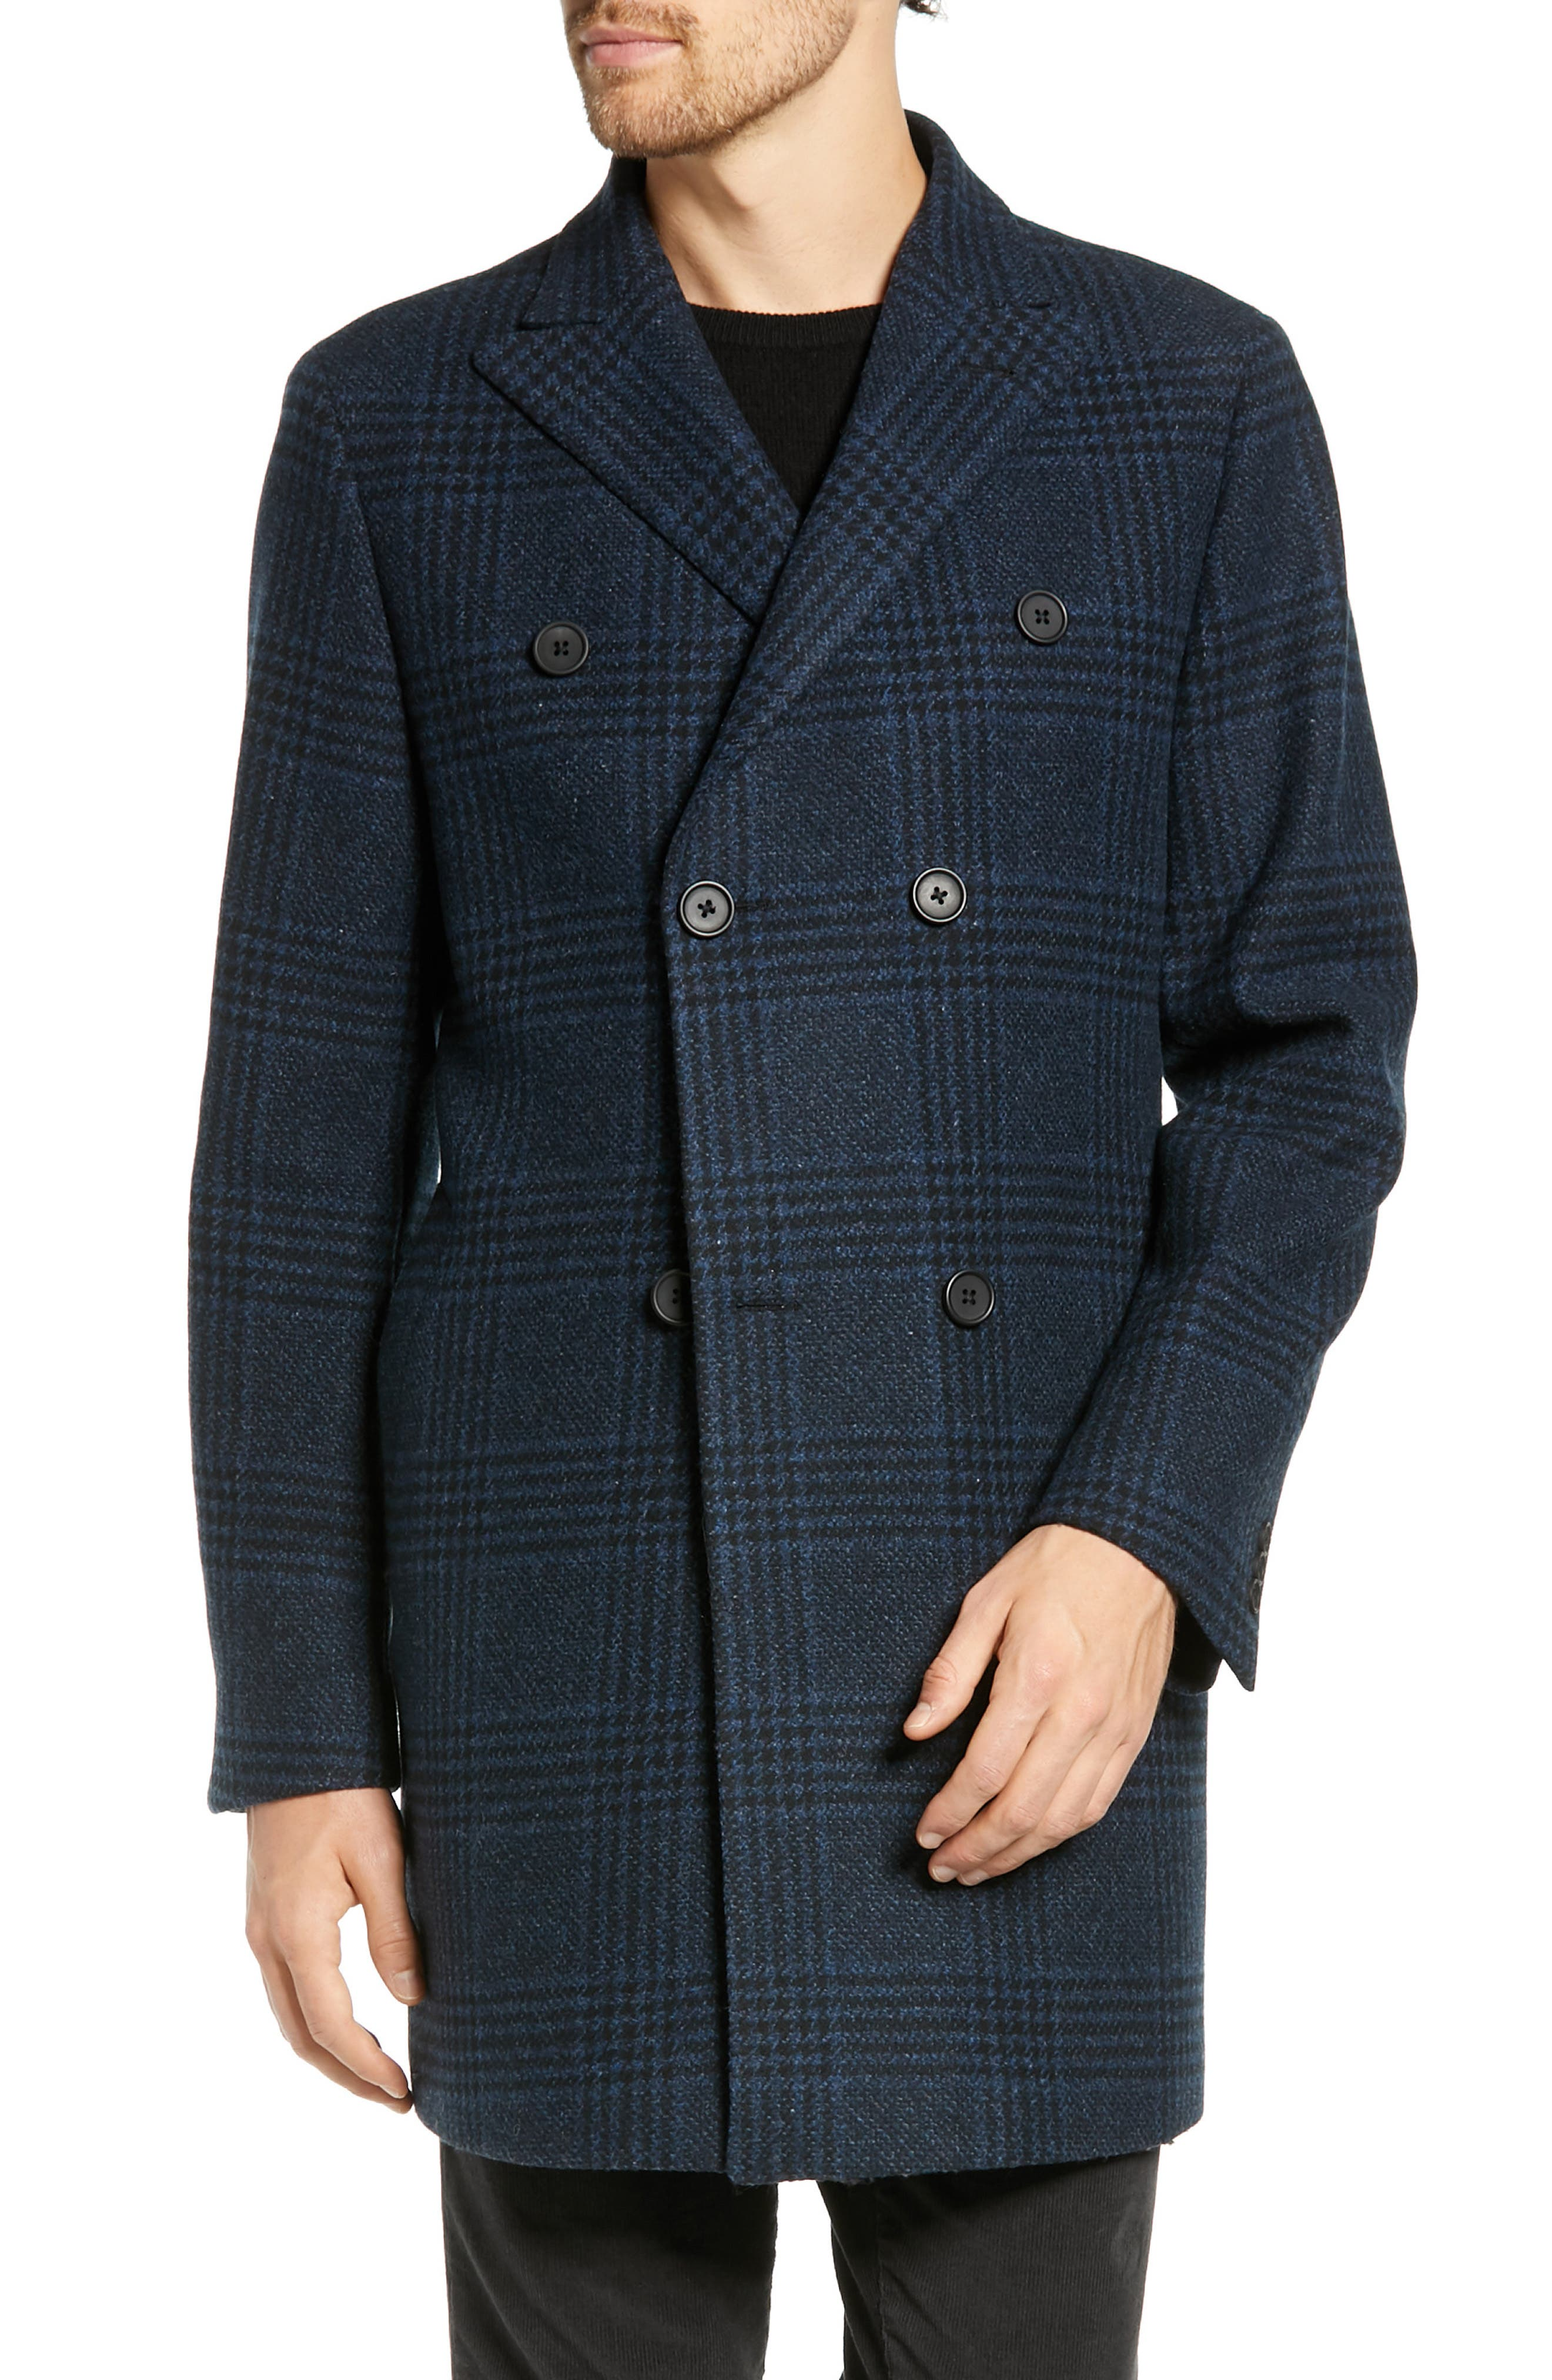 Jackson Extra Trim Fit Wool Overcoat,                         Main,                         color, NAVY